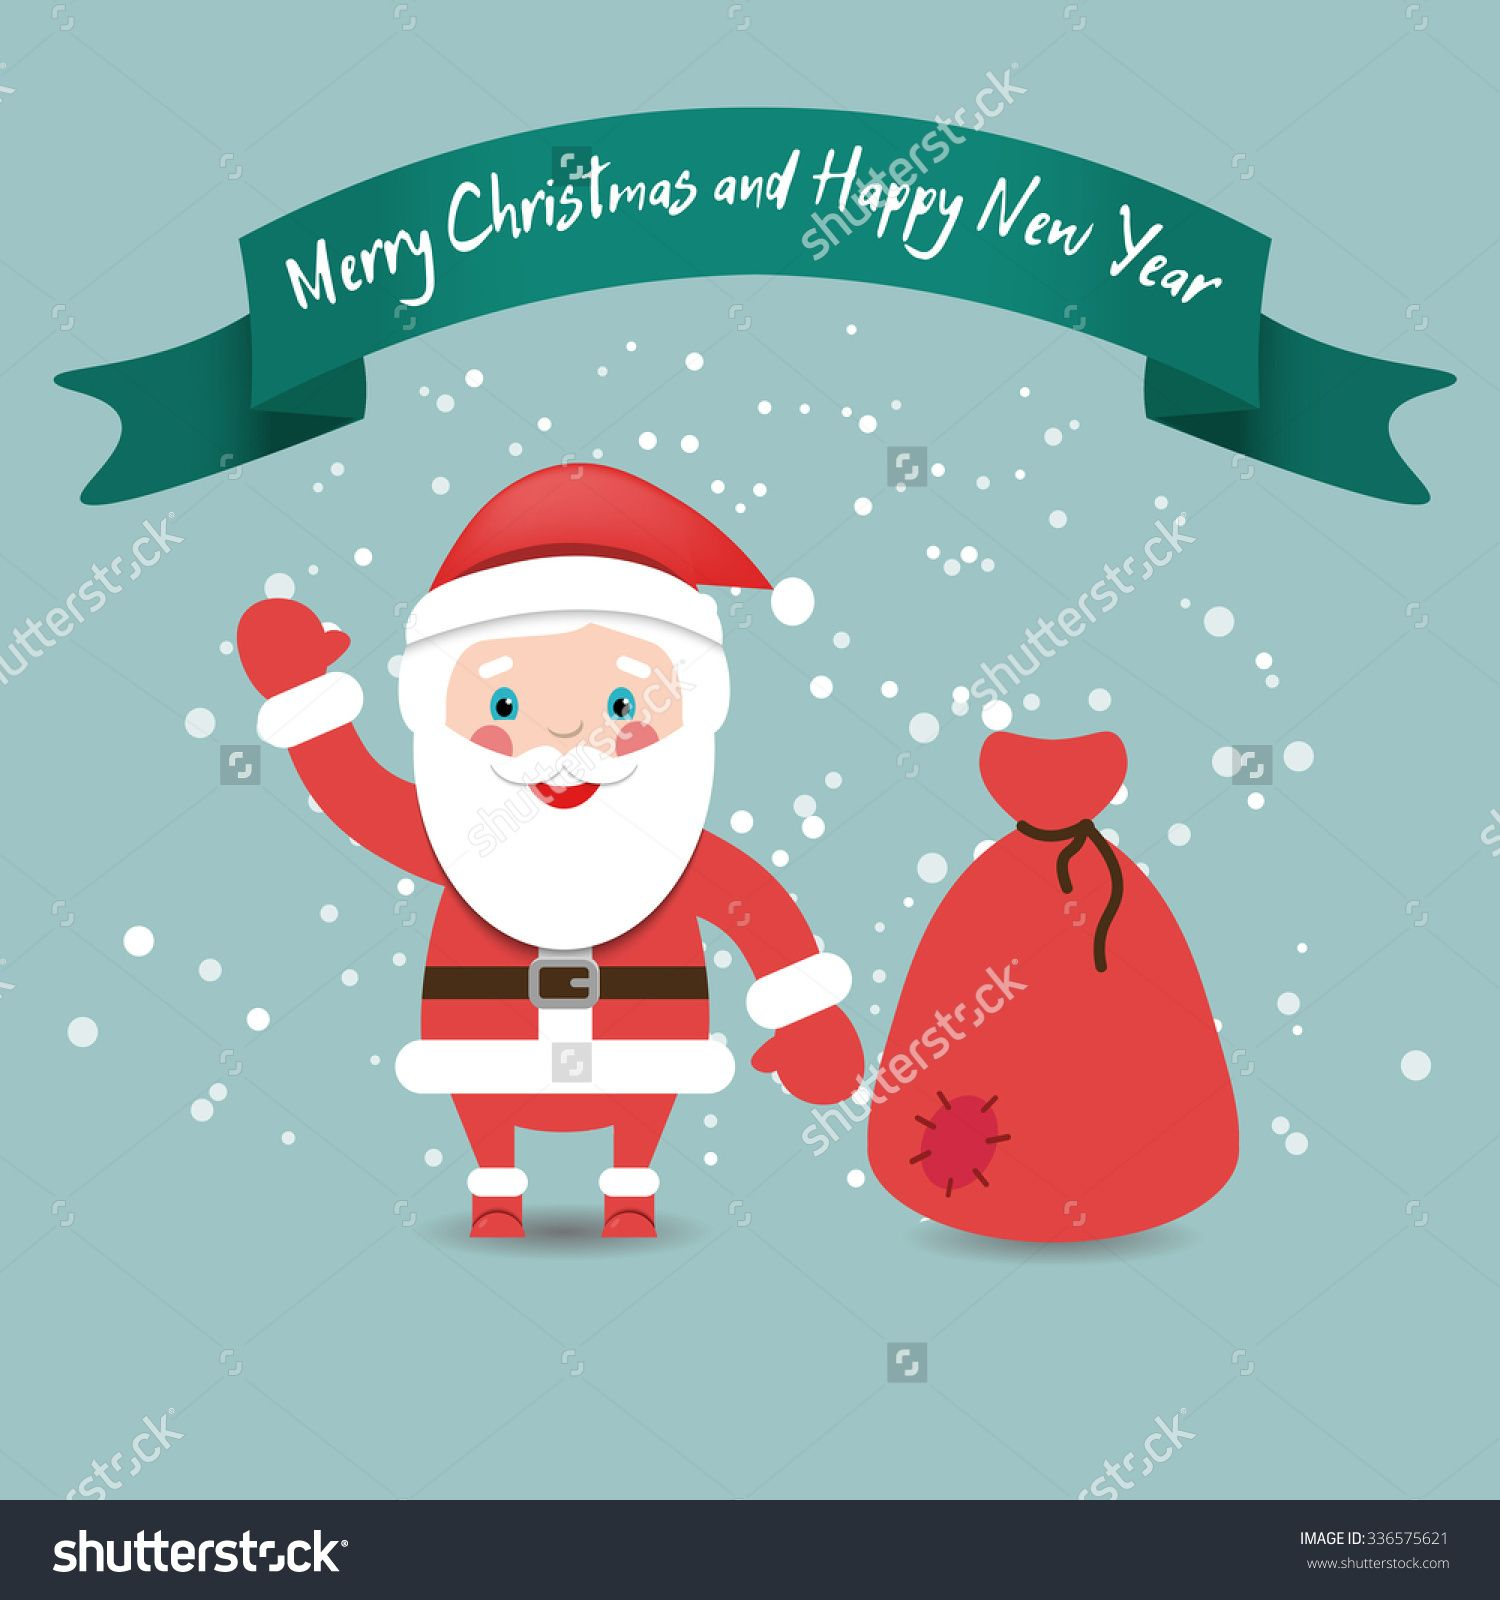 Funny Santa Claus with bag in red suit under snow, Christmas and New Year card.